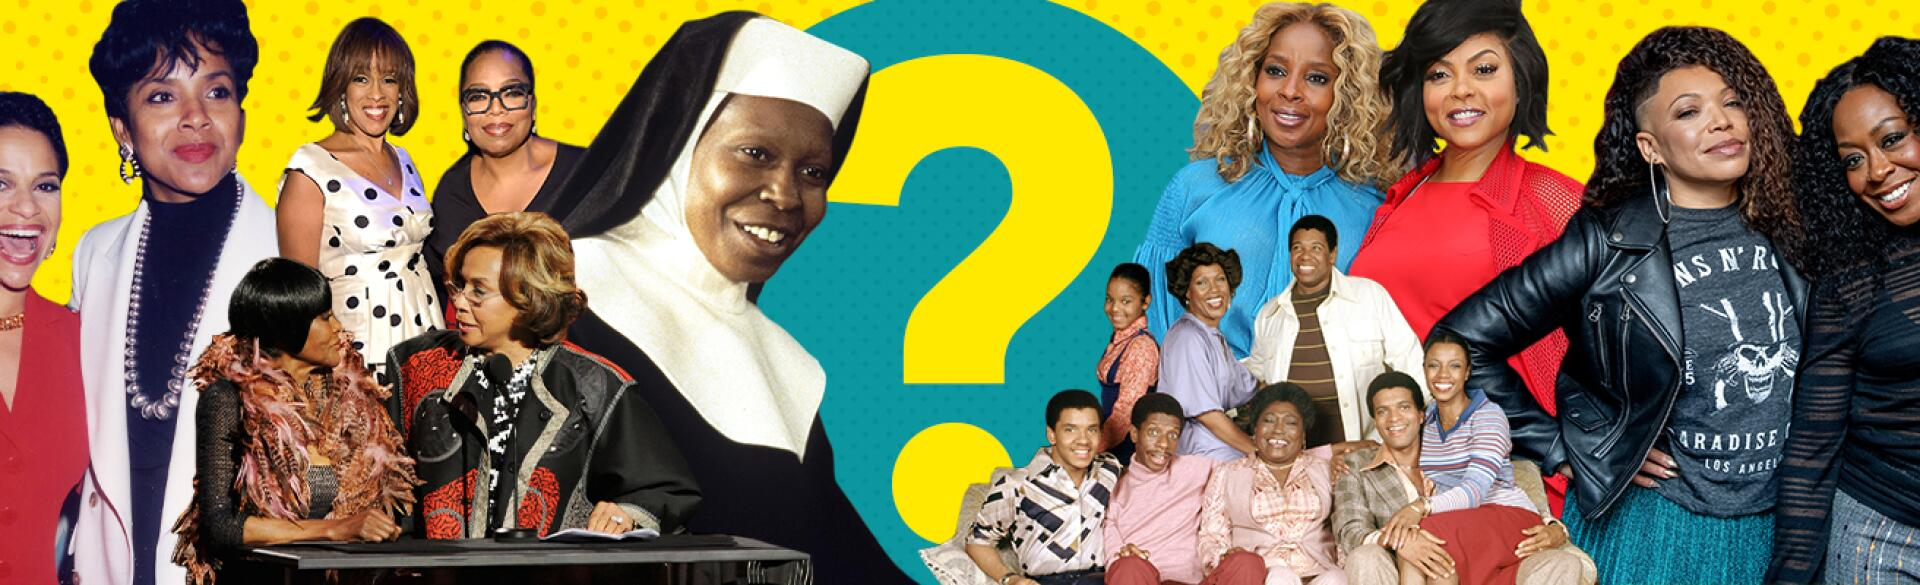 collage_of_celebrity_images_for_sisters_trivia_quiz_1440x400.jpg